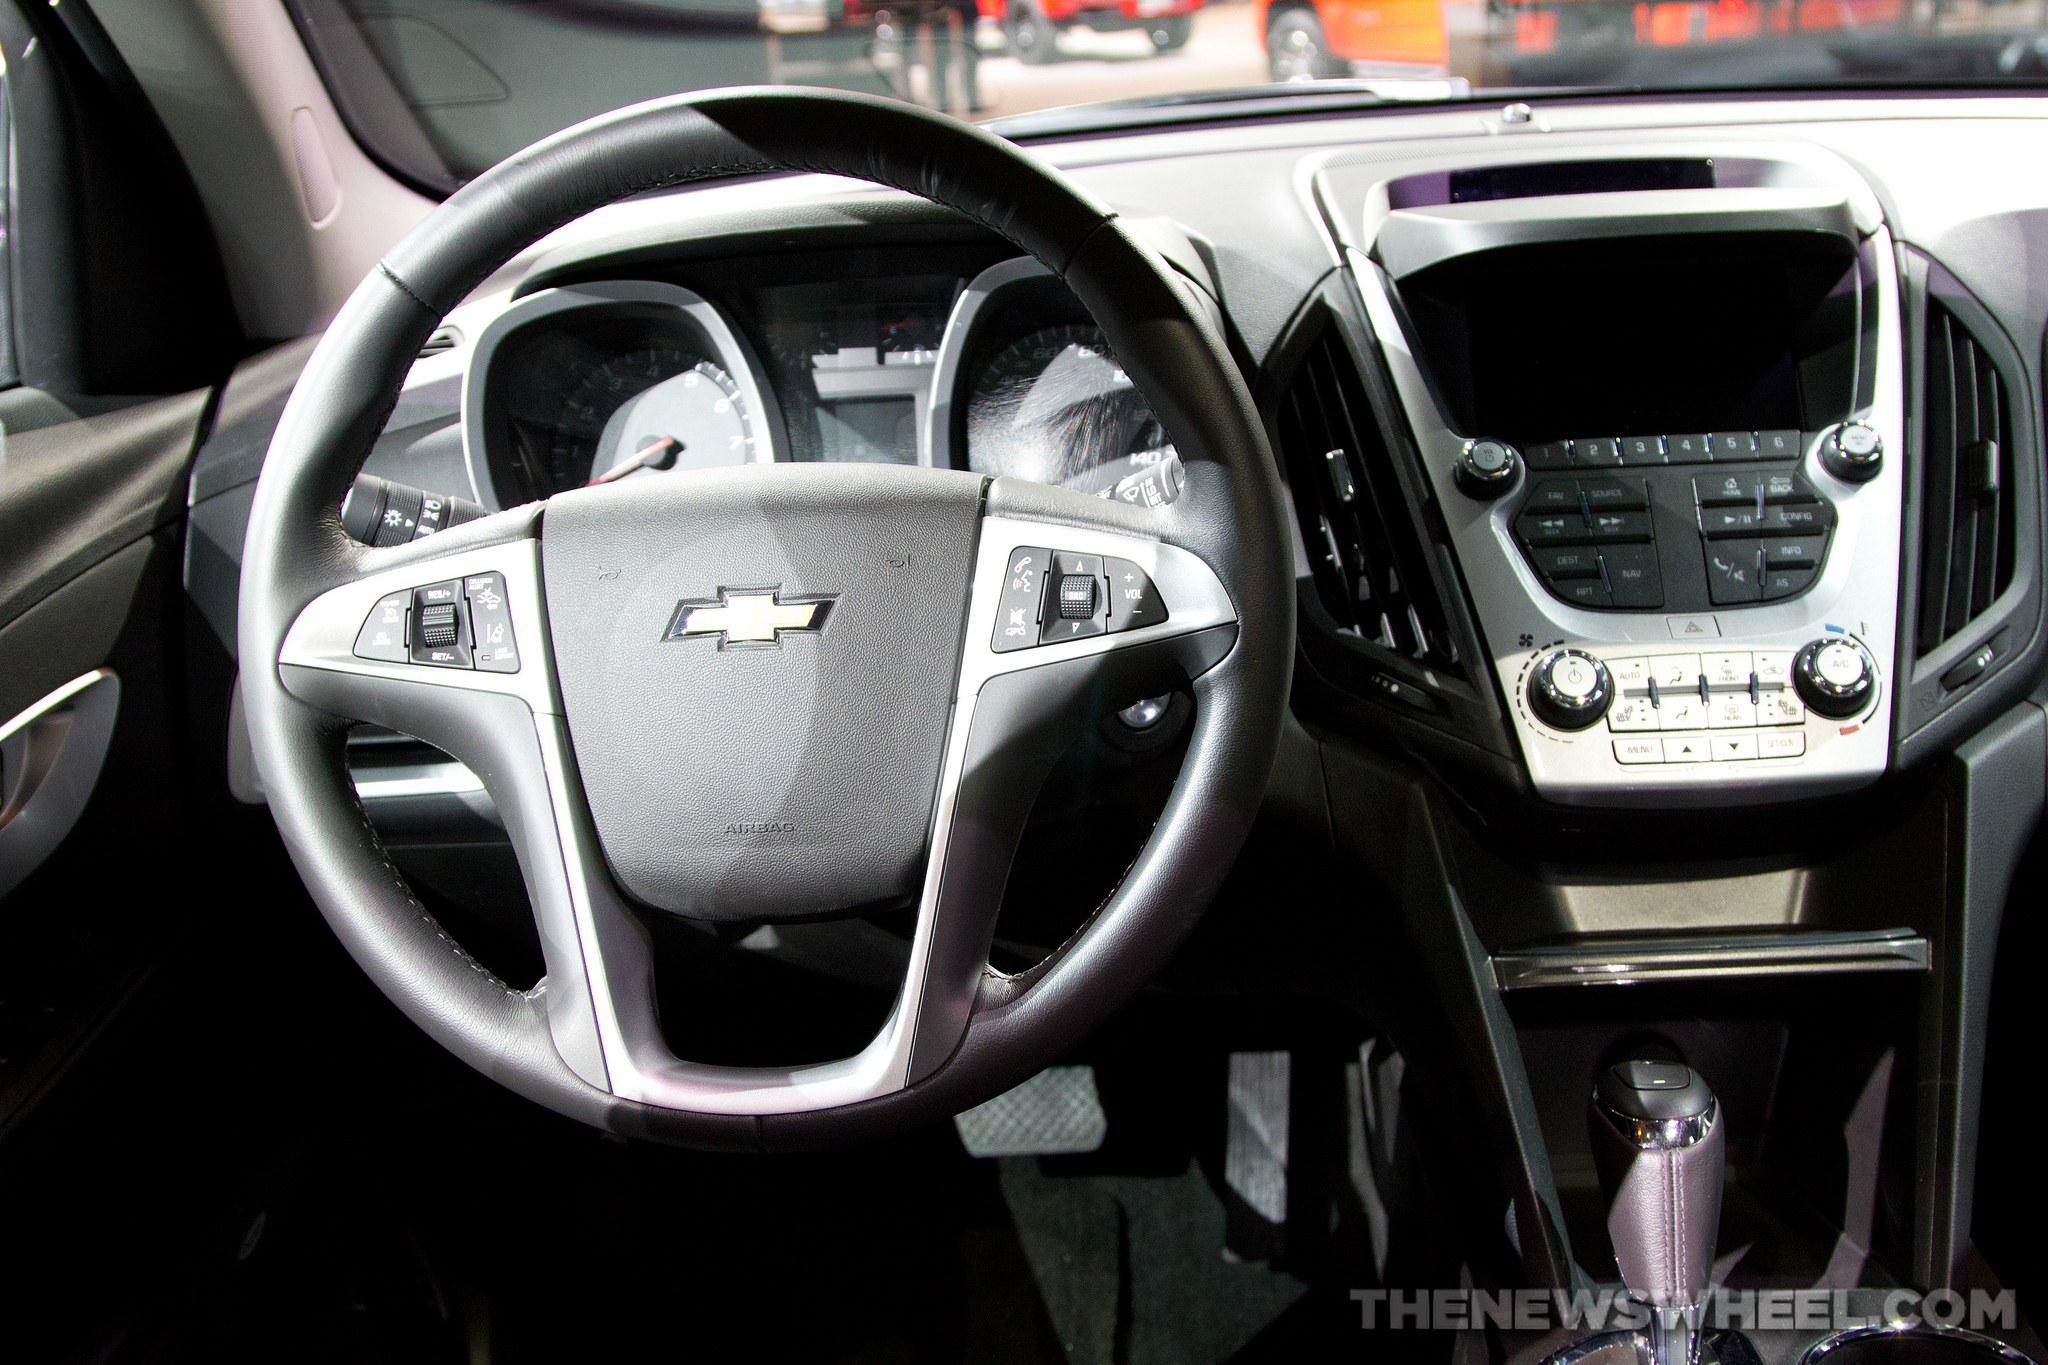 2016 chevy equinox overview the news wheel. Black Bedroom Furniture Sets. Home Design Ideas